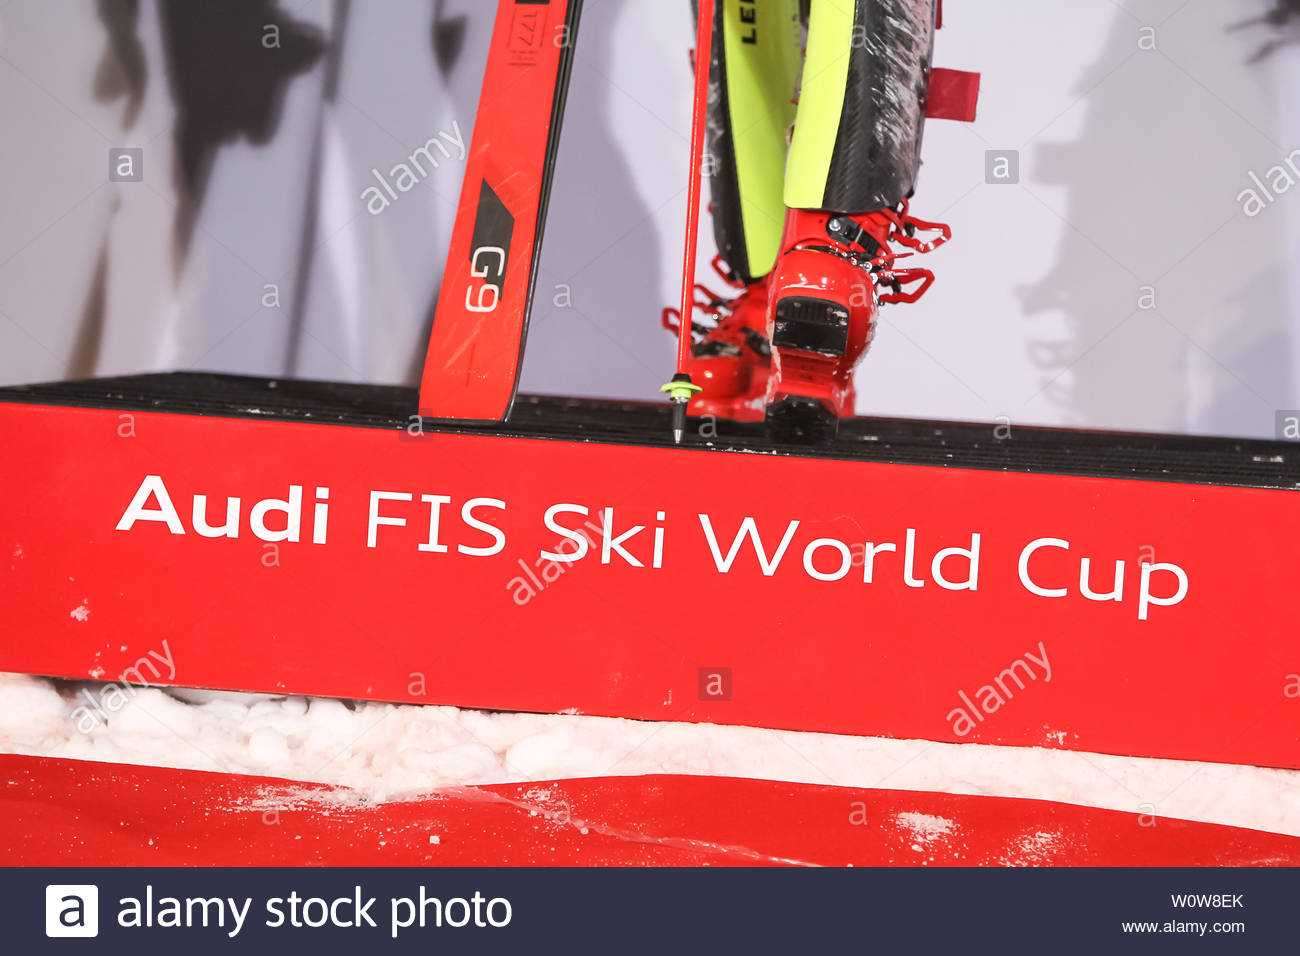 Zagreb, Croatia - January 5, 2019 : Audi FIS Ski World Cup logo on the award ceremony of the Audi FIS Alpine Ski World Cup Women's Slalom, Snow Queen Trophy 2019 in Zagreb, Croatia. - Stock Image